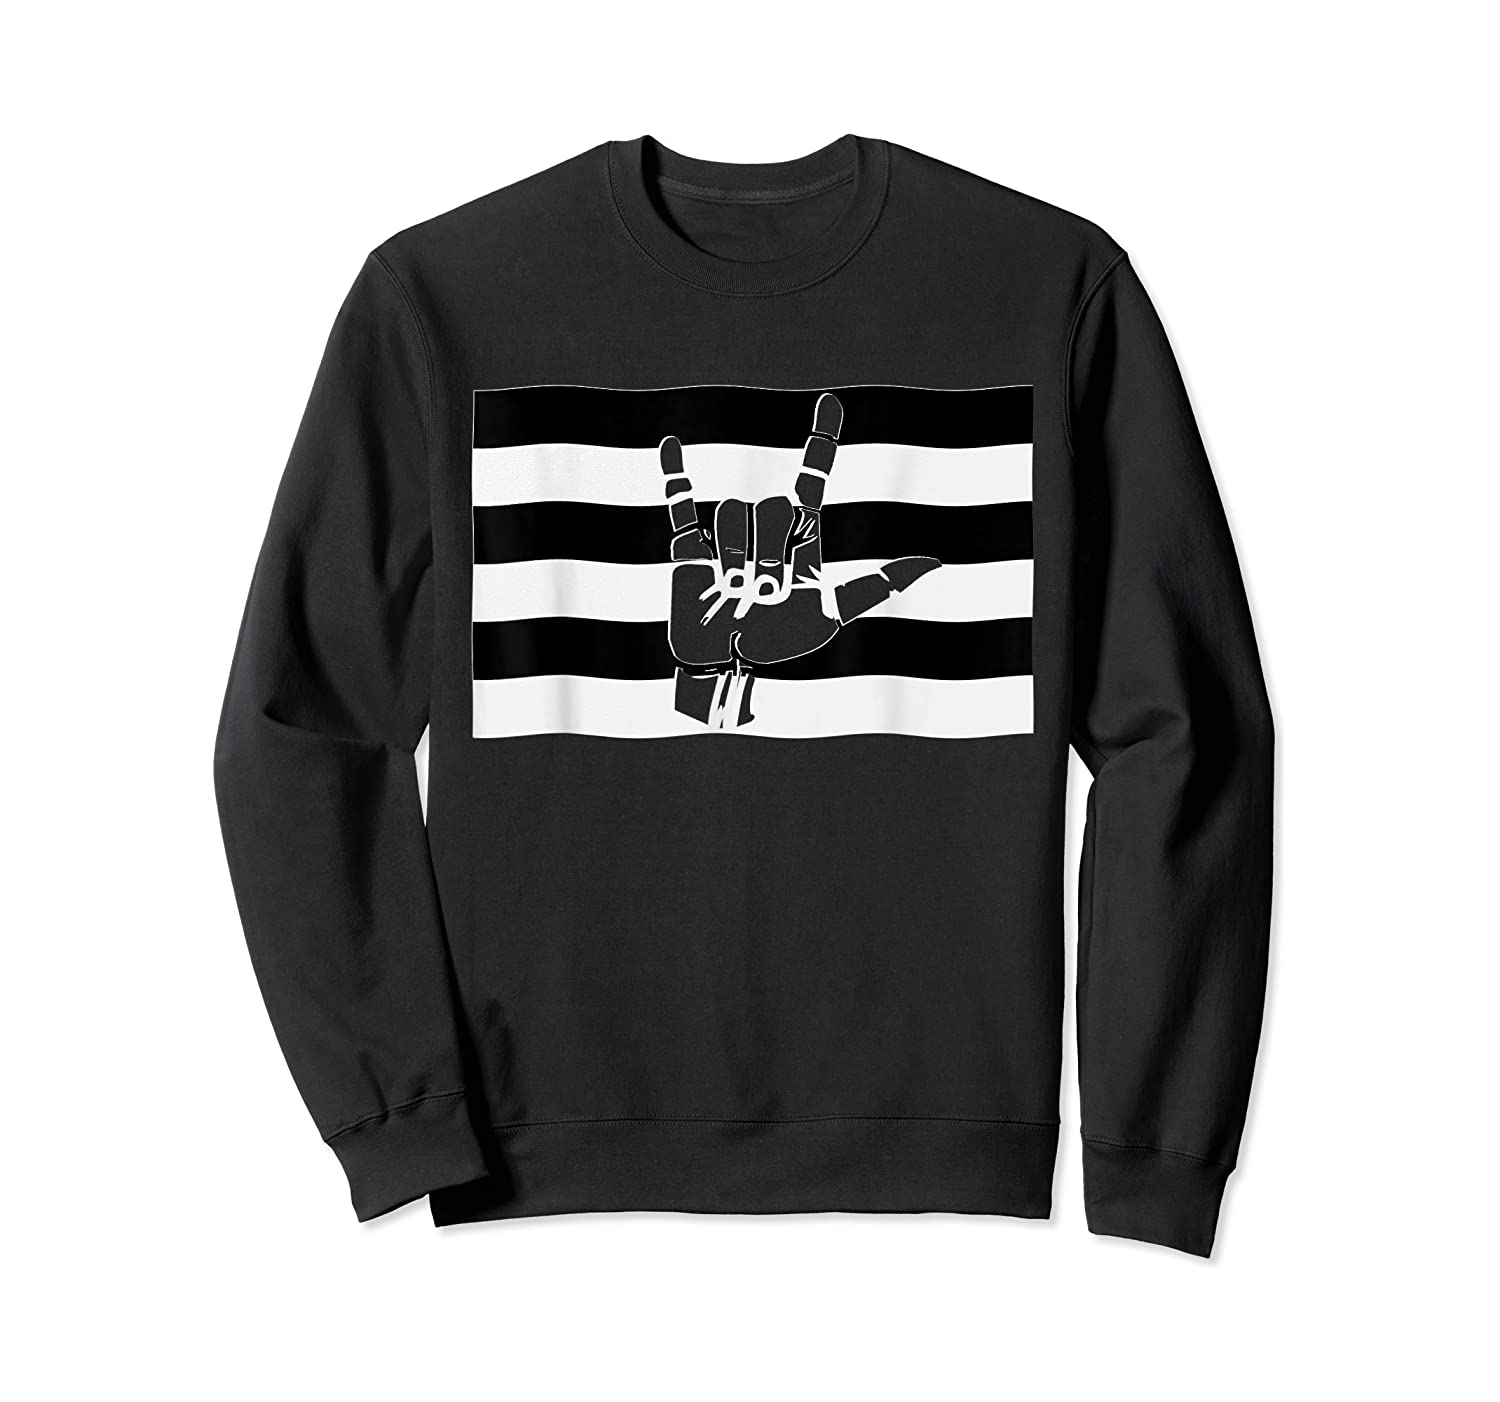 Straight Pride Flag And Love Sign Inside, Heterosexuals Gift Shirts Crewneck Sweater